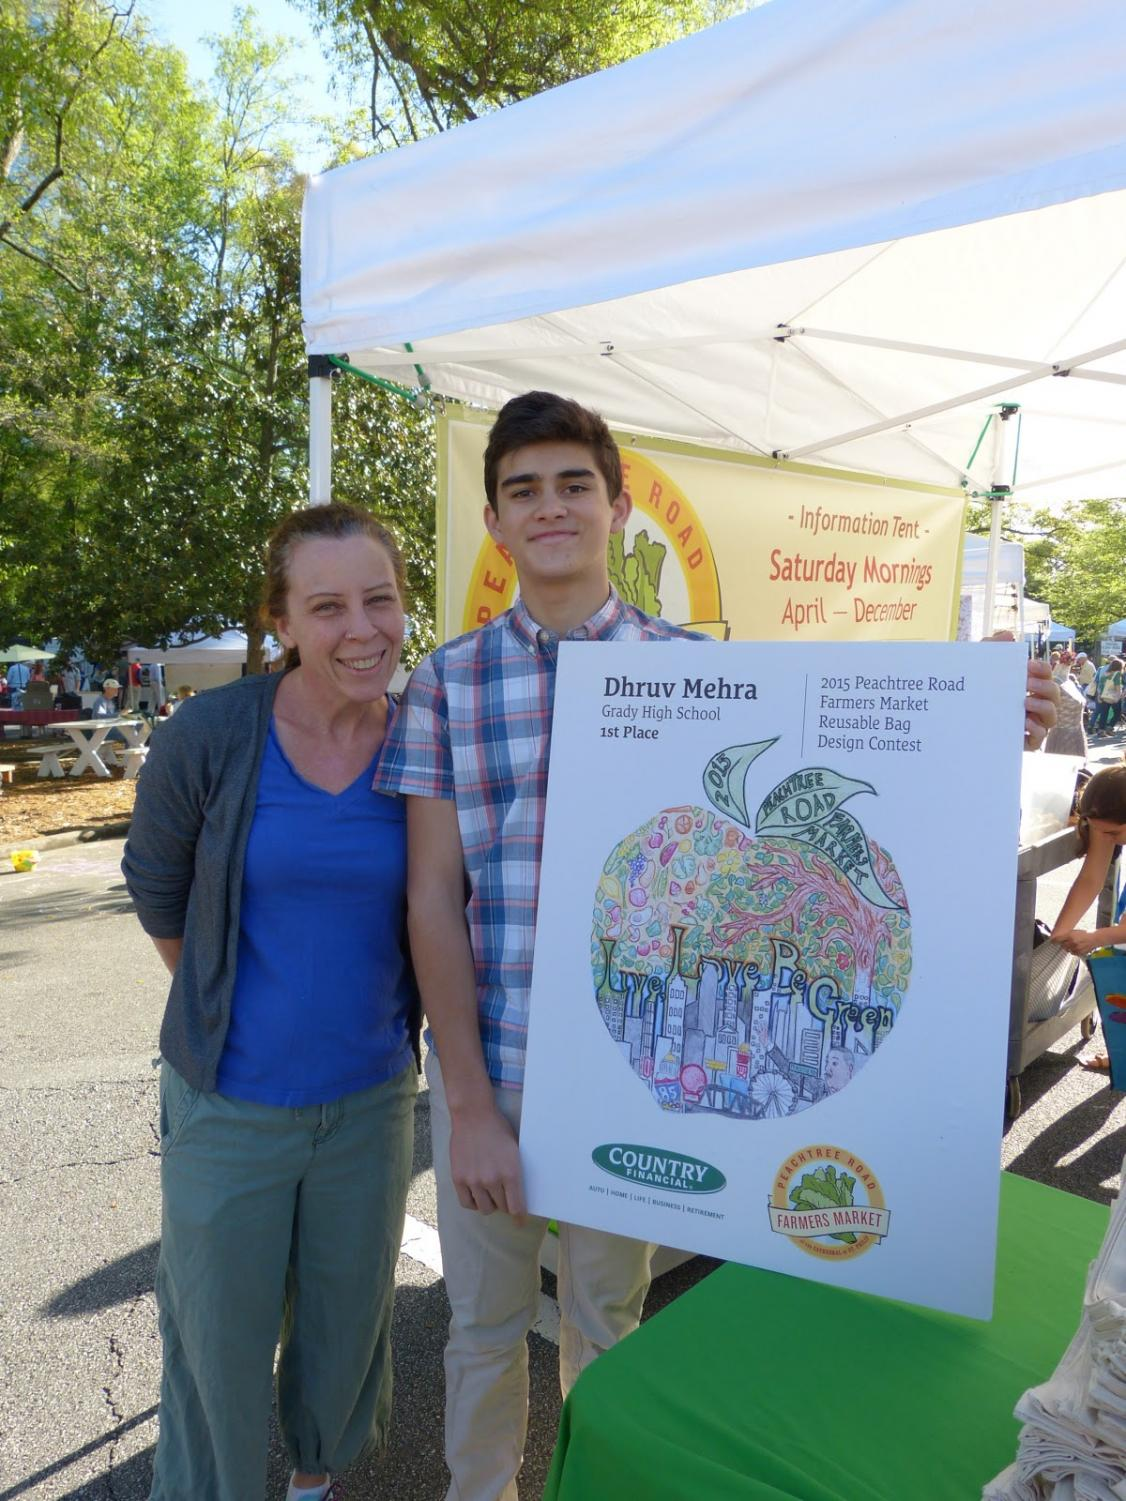 Dawn Wadsworth and Dhruv Mehra attend the first Peachtree Road Farmers Market of the 2014 season in early April. Mehra won first prize and a $1000 scholarship with his design that included images of the Atlanta skyline, the Capitol building, Dr. Martin Luther King Jr. and local produce.